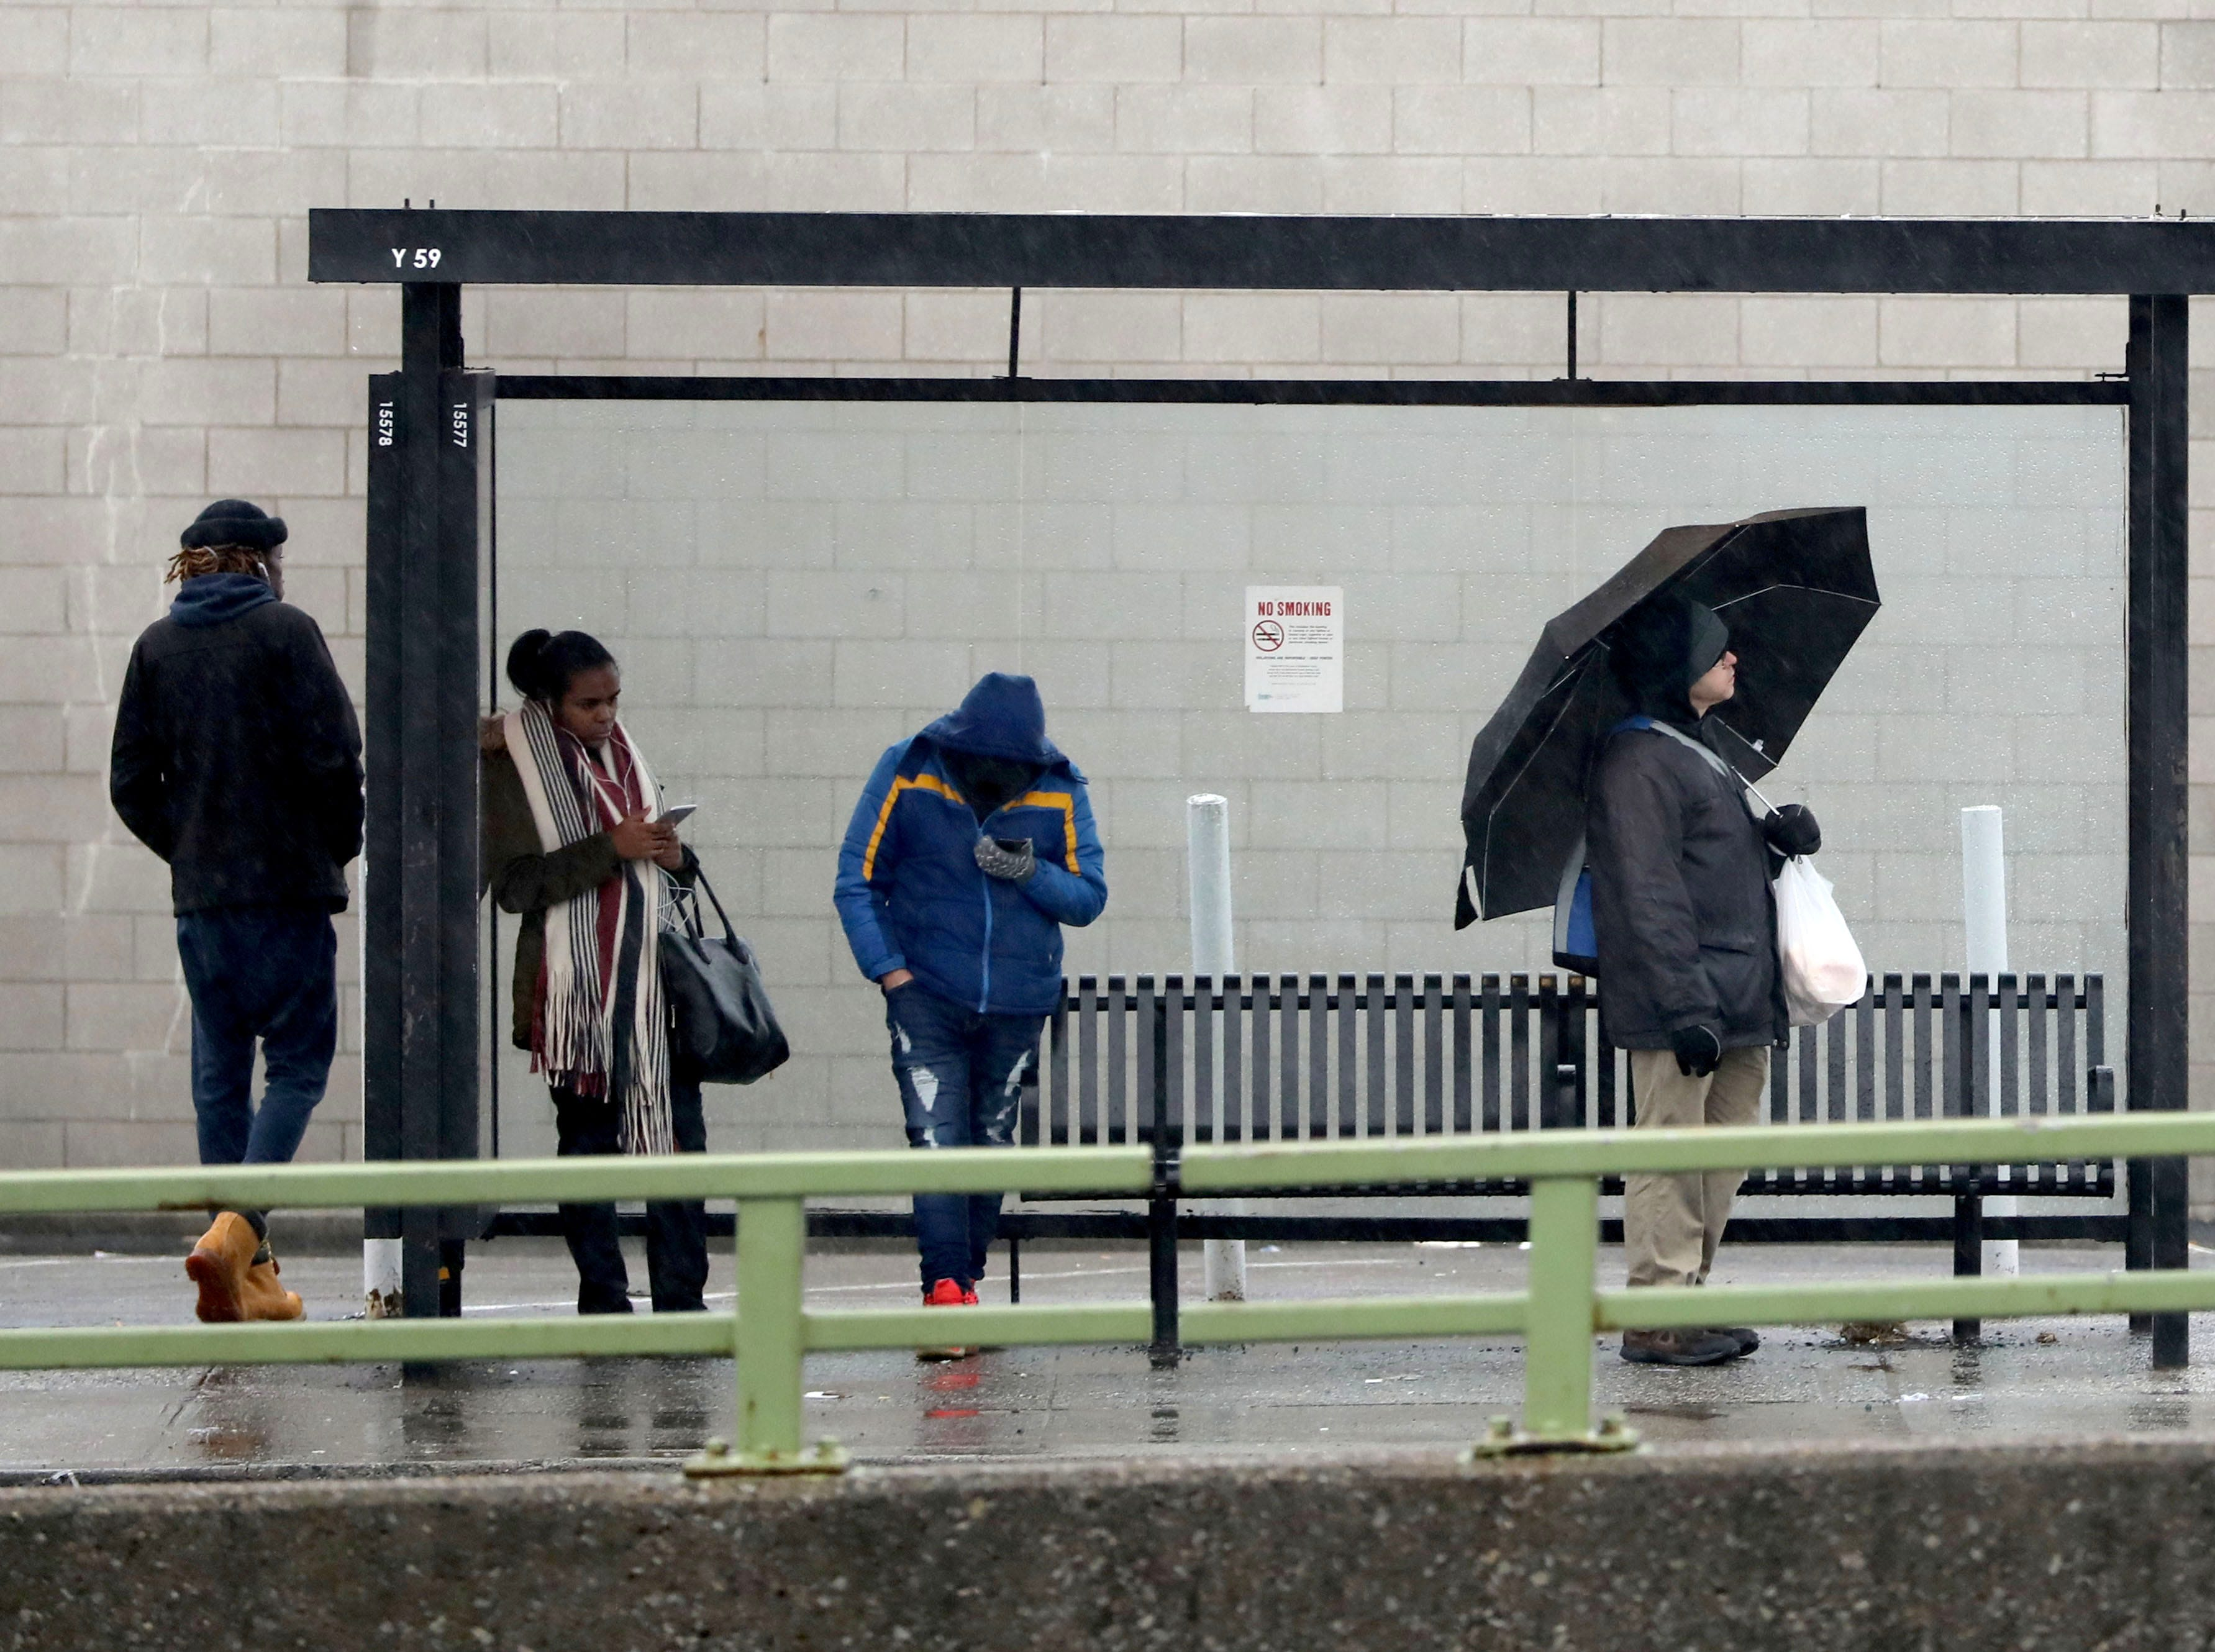 Bus commuters wait for the Bee Line bus as they stand in a bus shelter with umbrellas, on Central Park Avenue and Yonkers Avenue in Yonkers, Jan. 20, 2019. Southern Westchester experienced more rain than snow in this latest snowstorm.